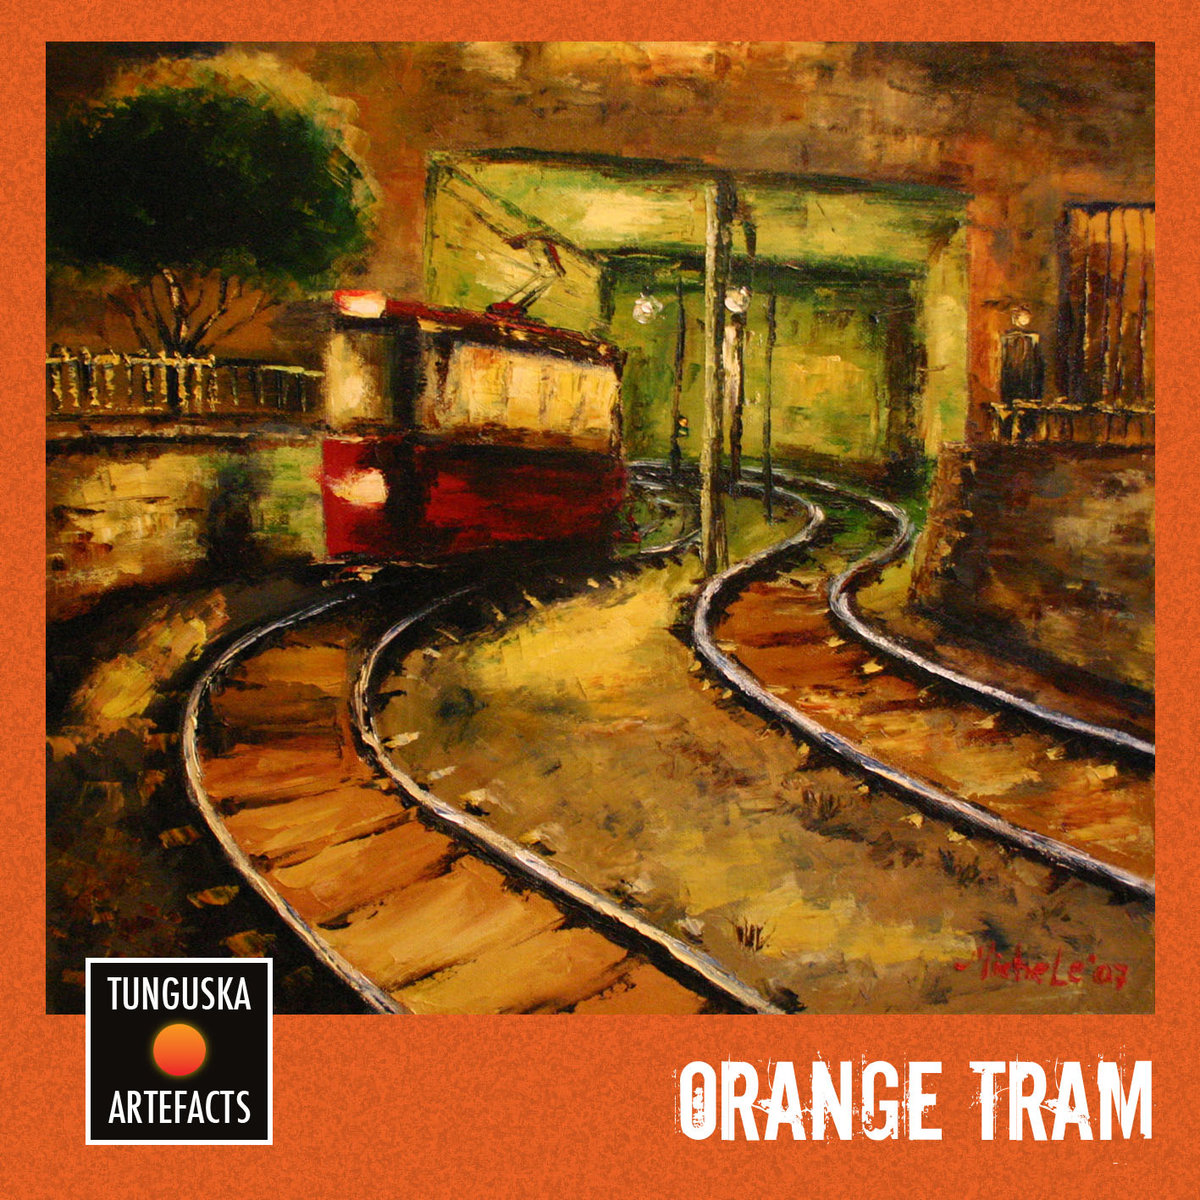 Pharmacy Orchestra - Newton's Spiral @ 'Tunguska Artefacts - Orange Tram' album (electronic, ambient)